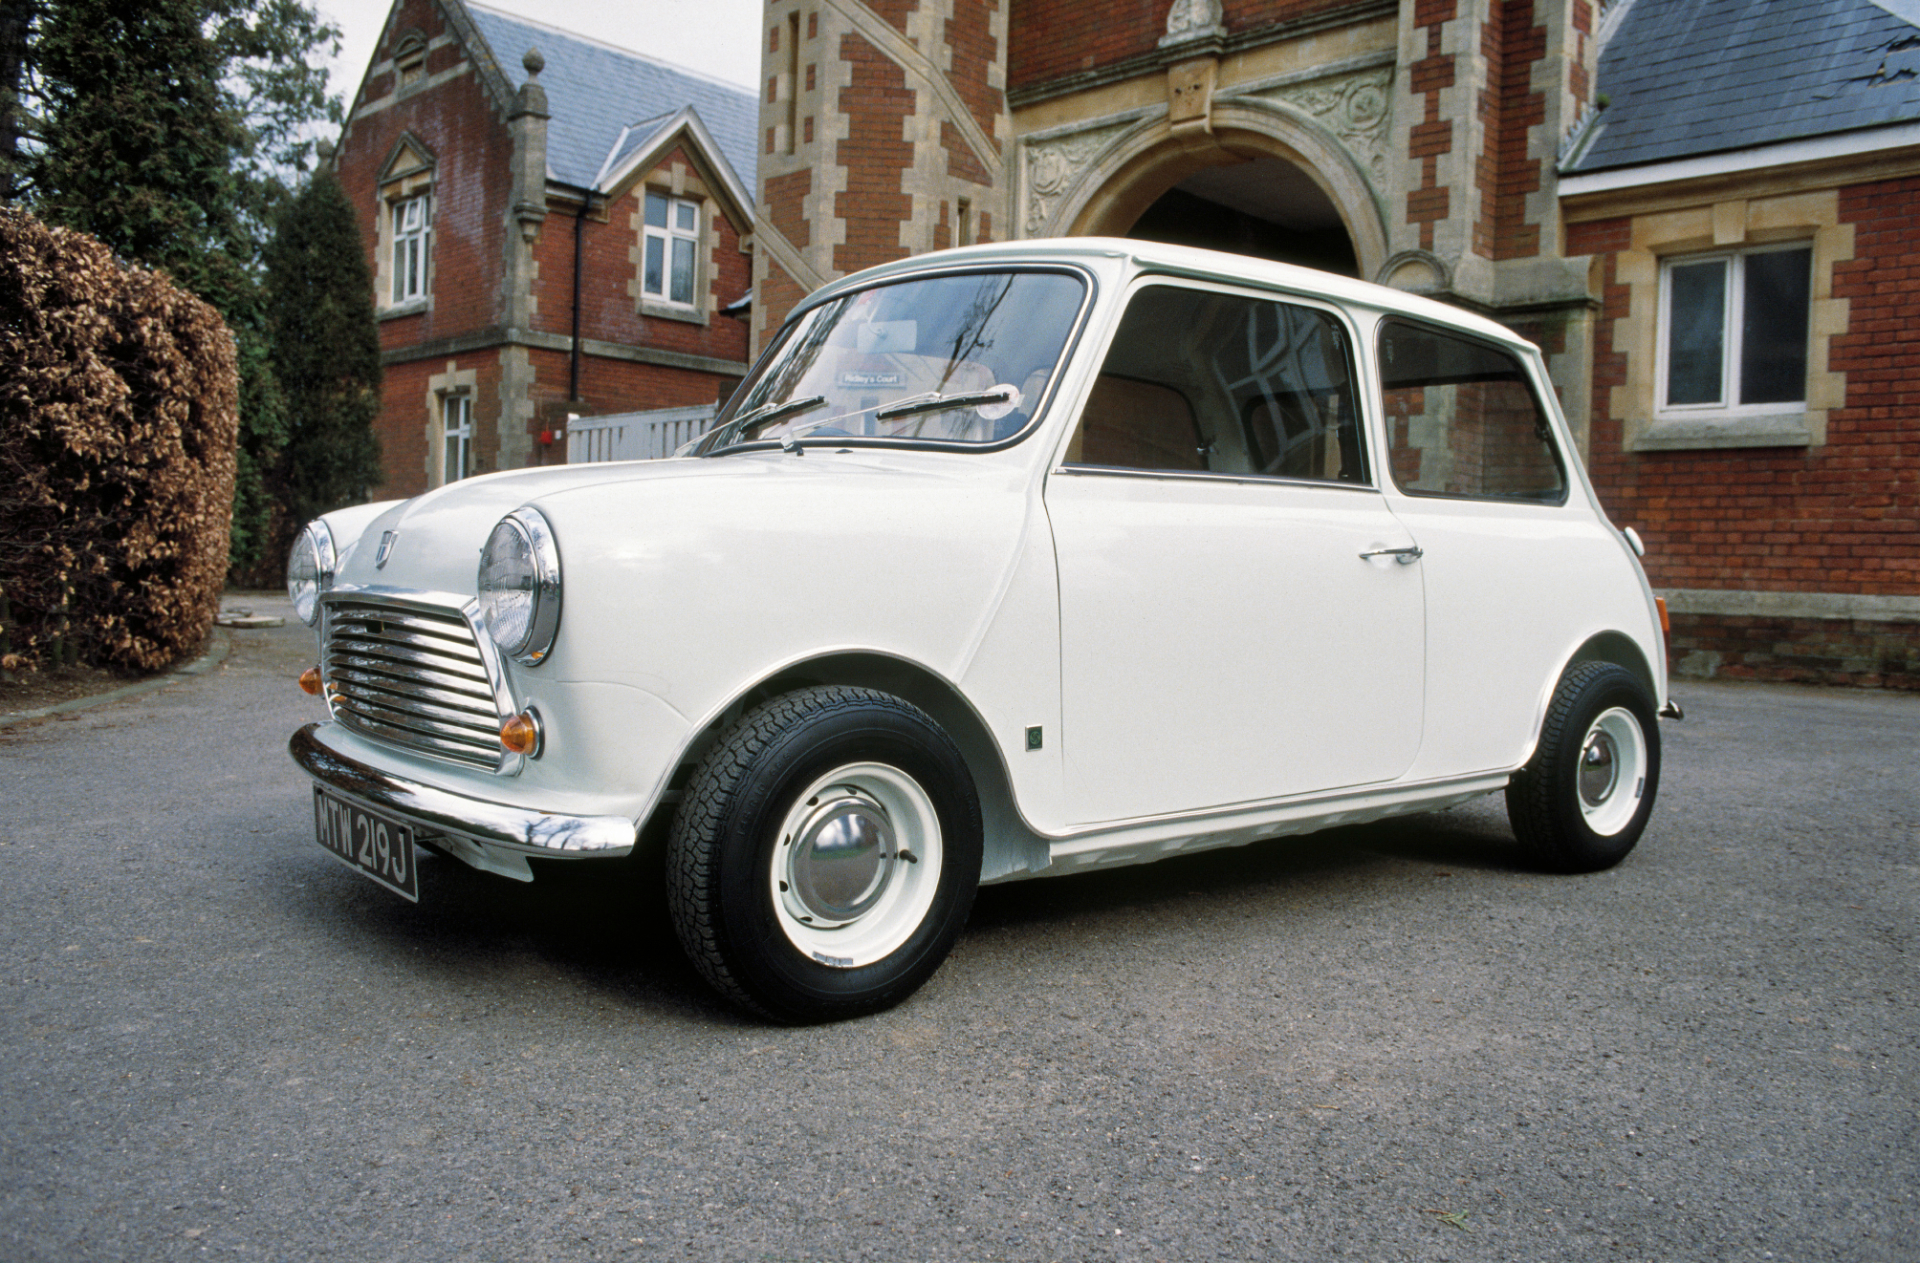 Classic MINI Proposed For Great British Innovation Title - Classic mini car